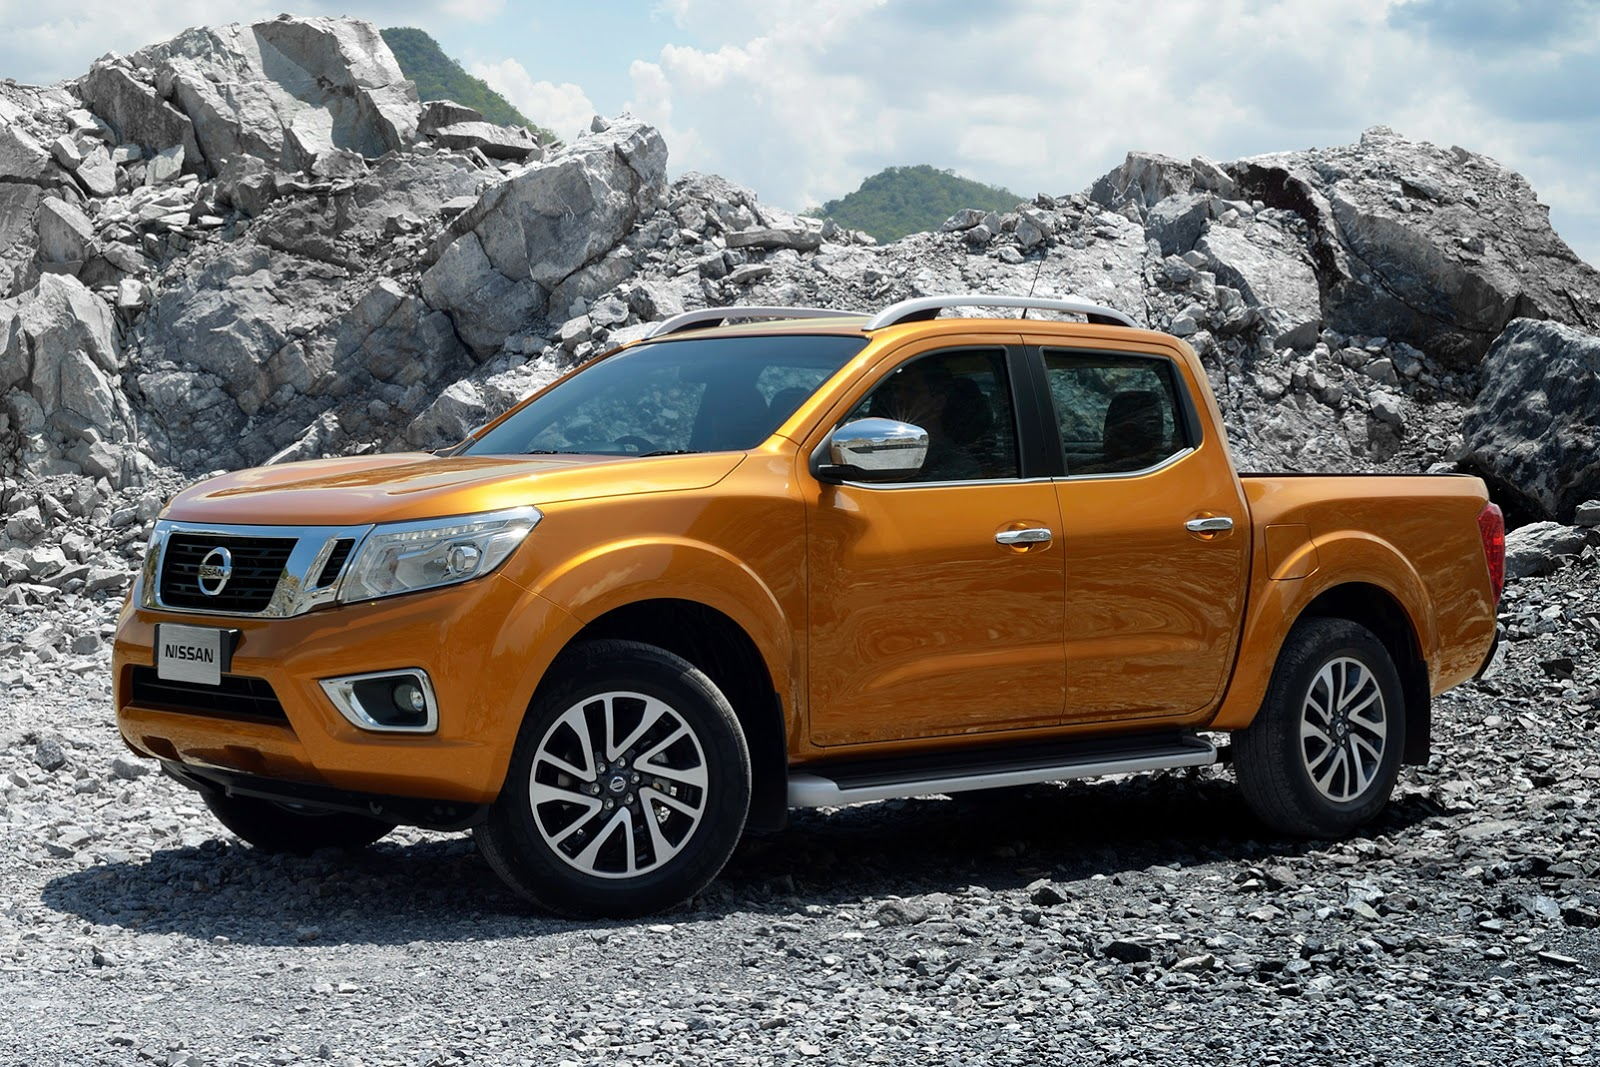 Renault Pickup Truck Confirmed For 2016 Will Be Based On